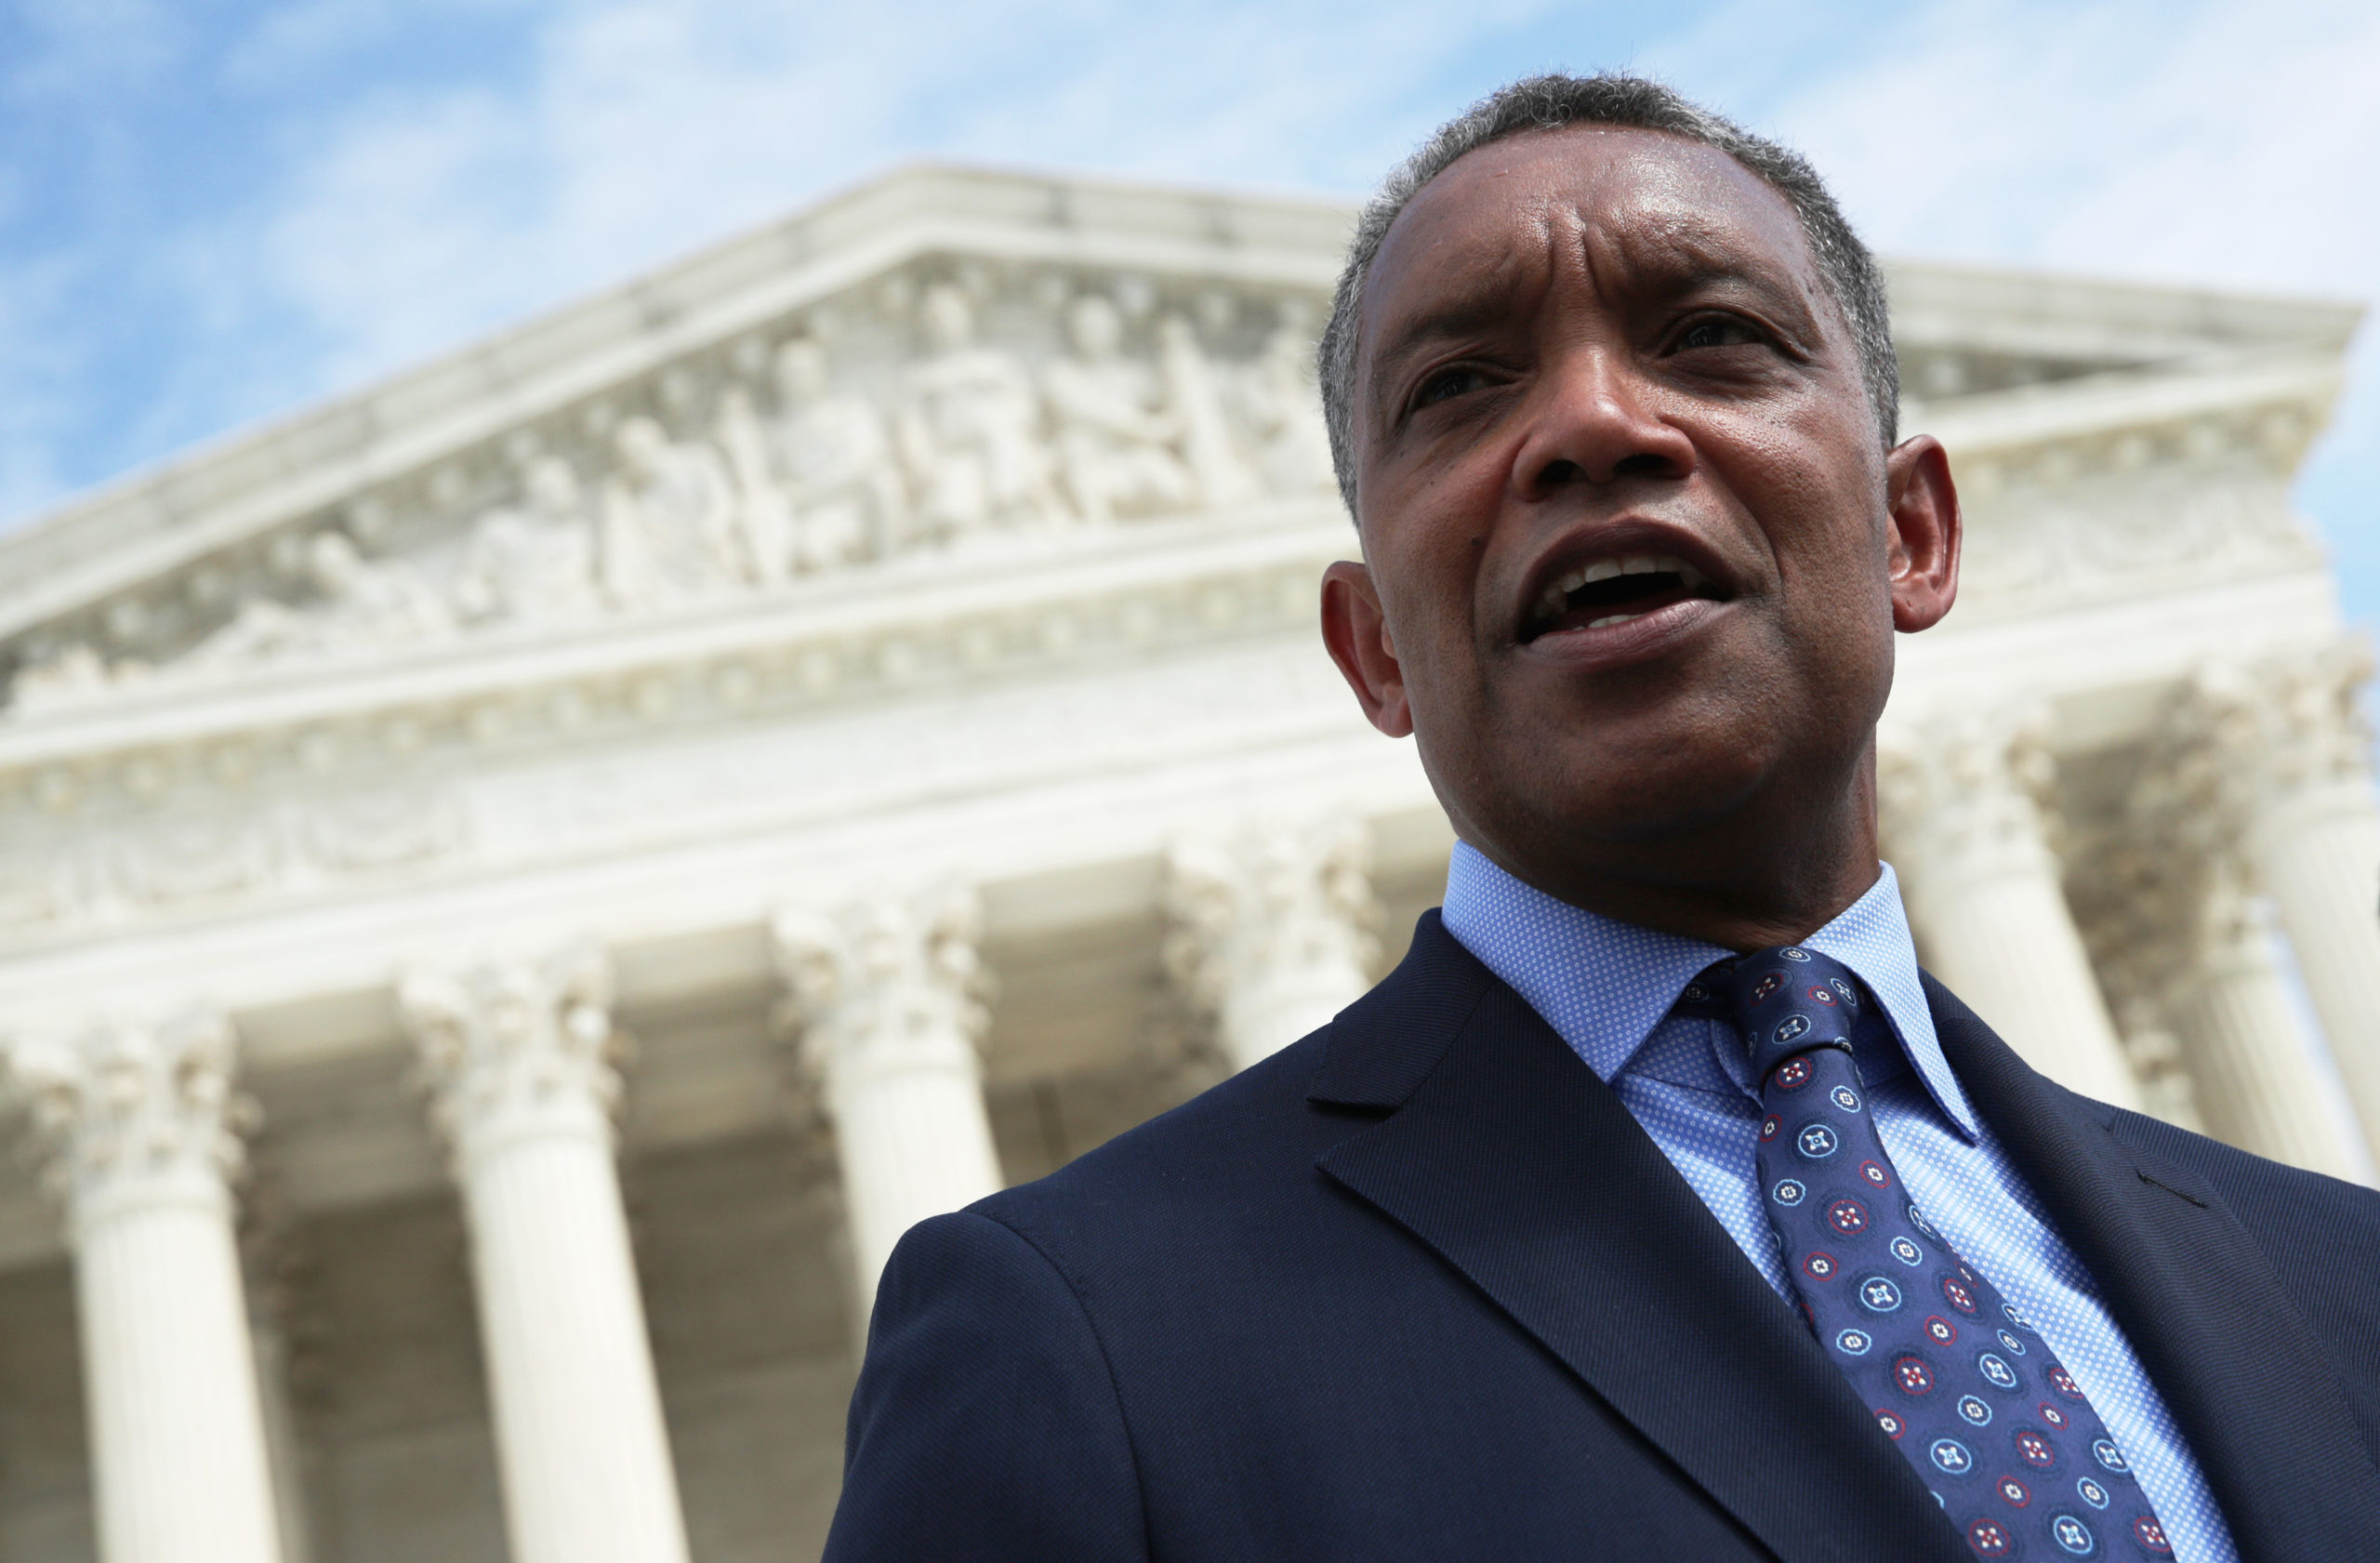 Washington, D.C. Attorney General Karl Racine speaks after a news conference in front of the Supreme Court in 2019. (Alex Wong/Getty Images)